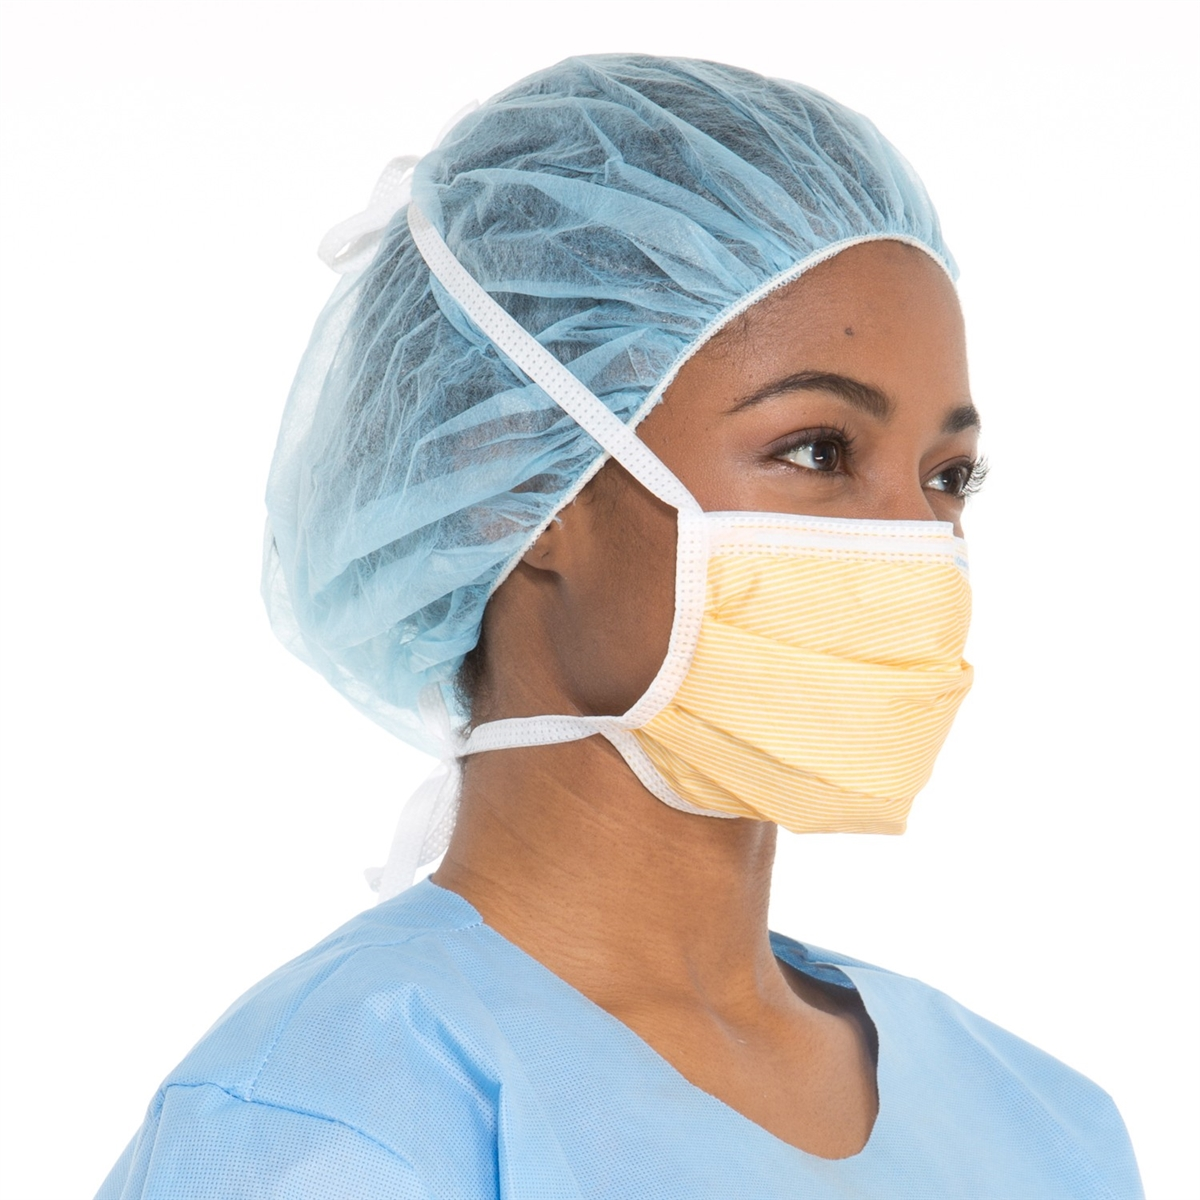 halyard surgical face mask